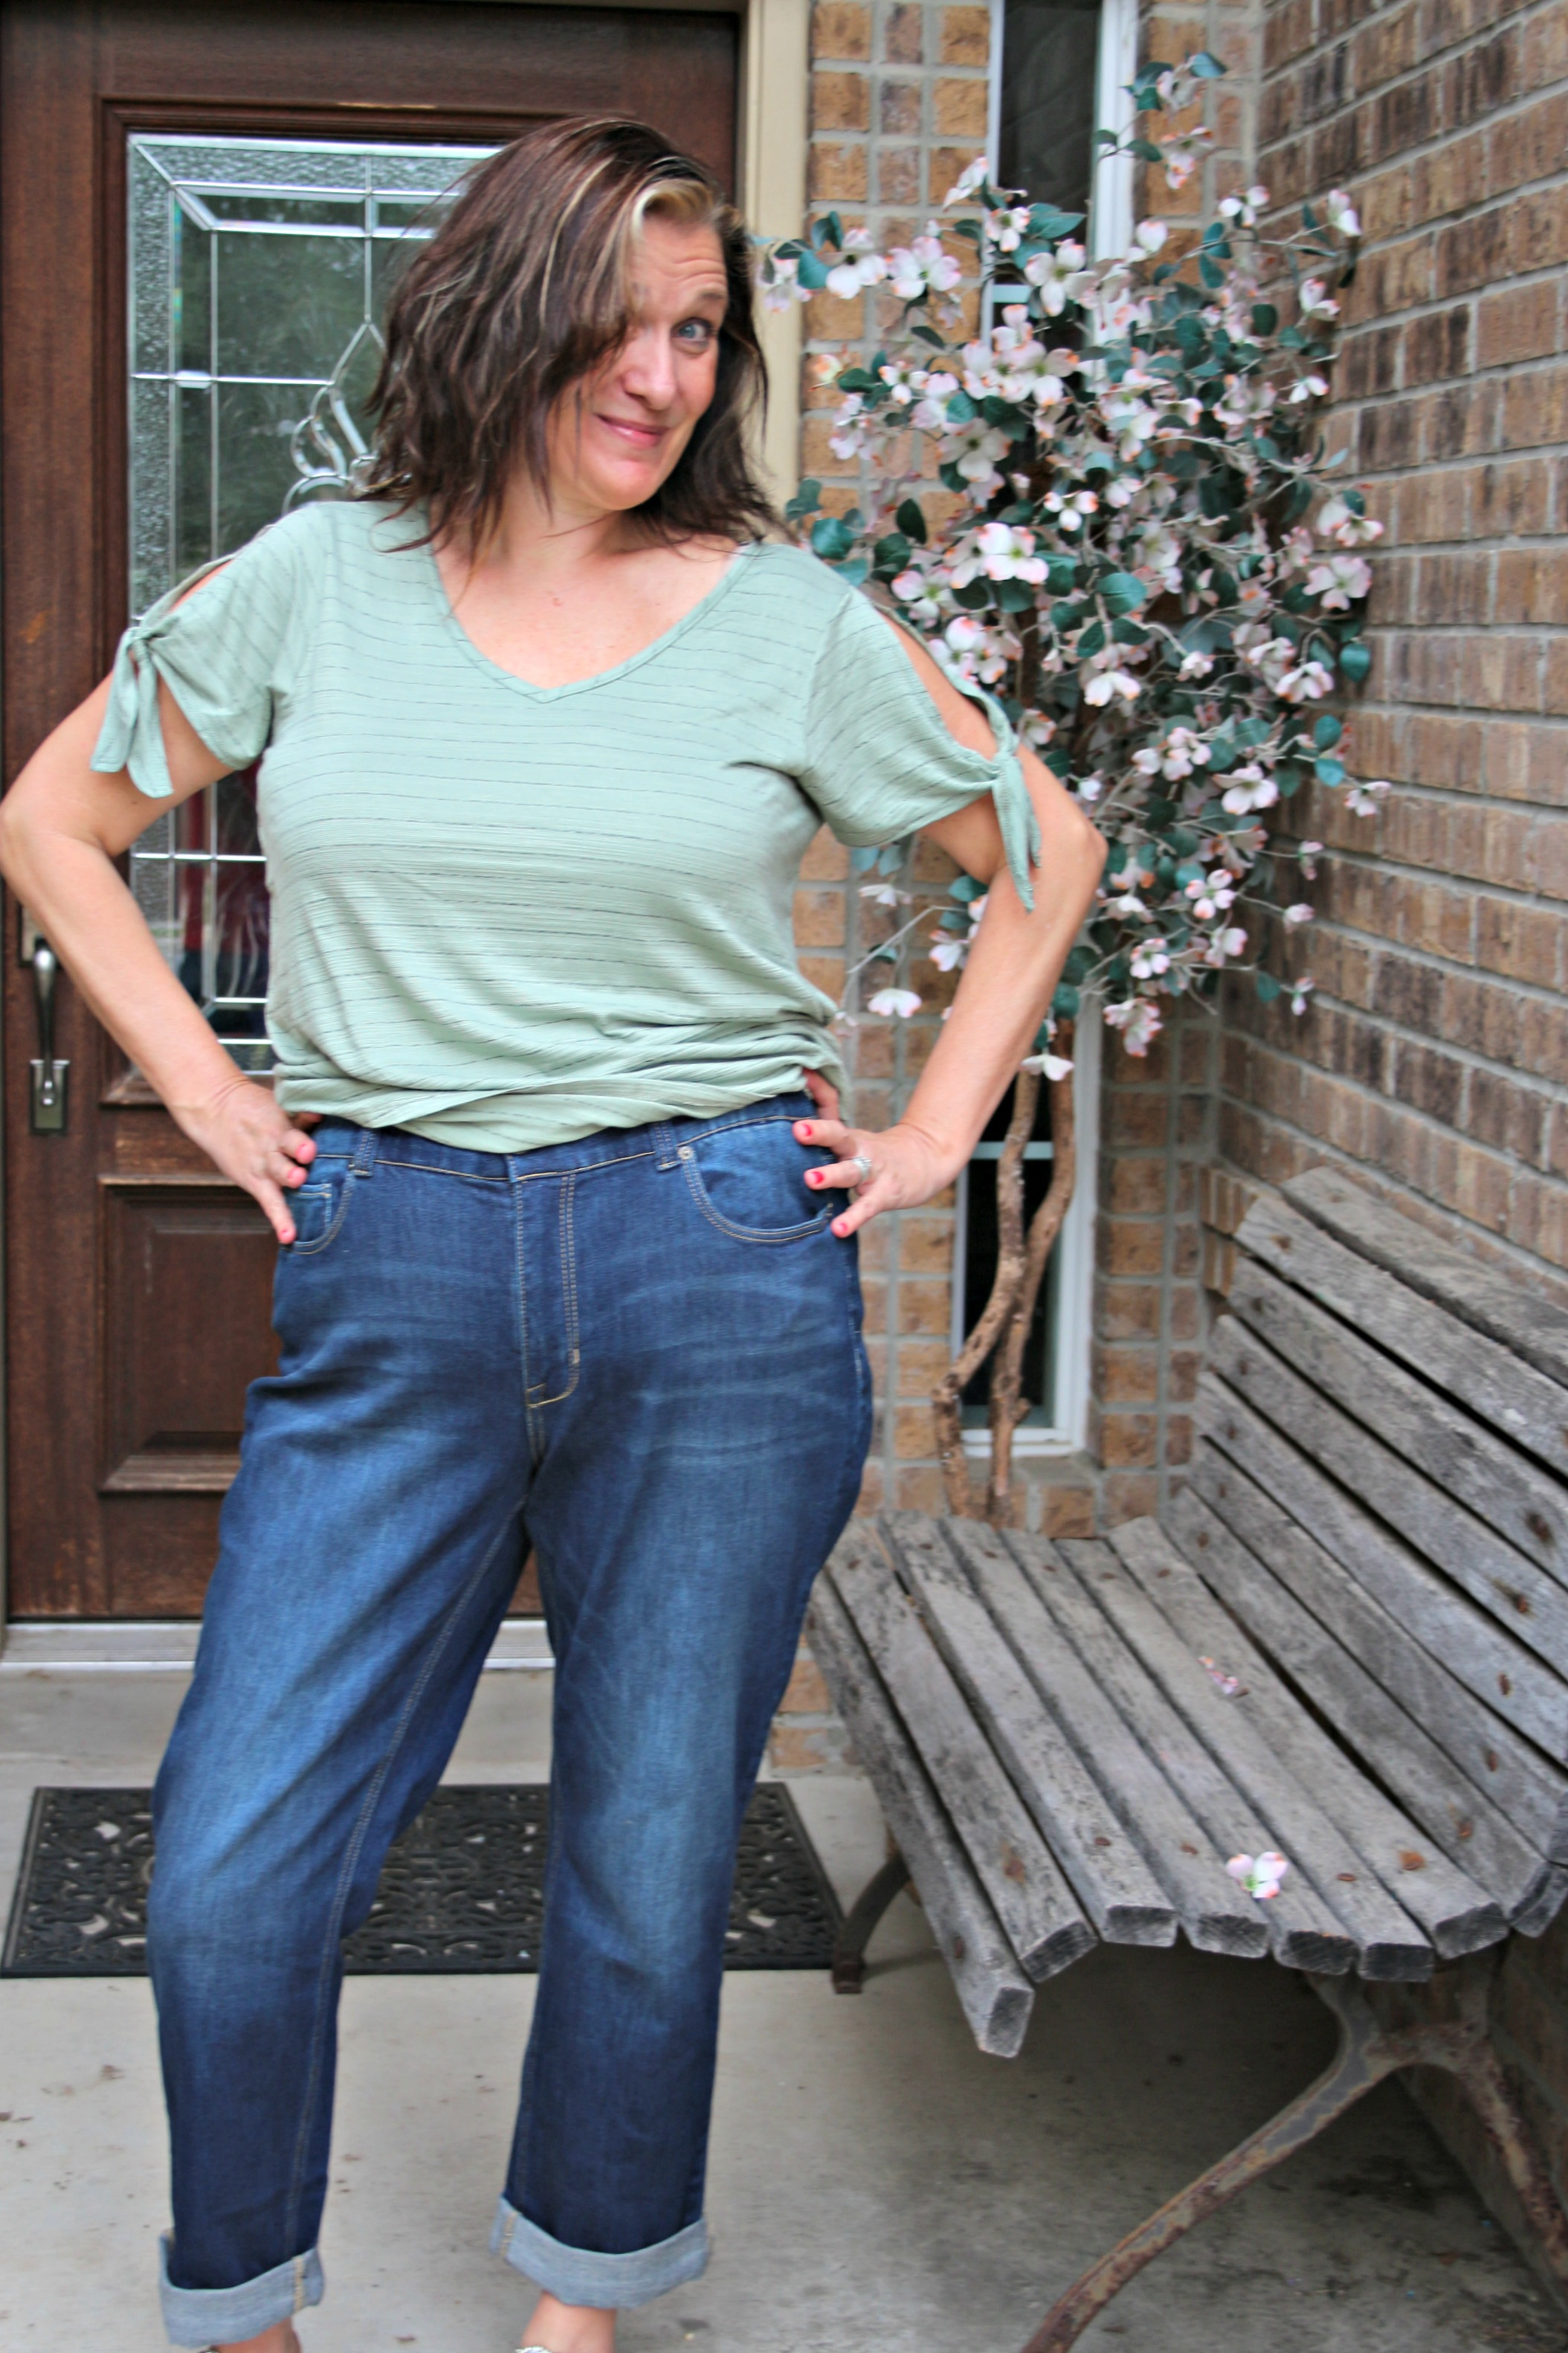 Fashion Friday - The Stitch Fix Box For Spain RIpped Jeans and Bifocals